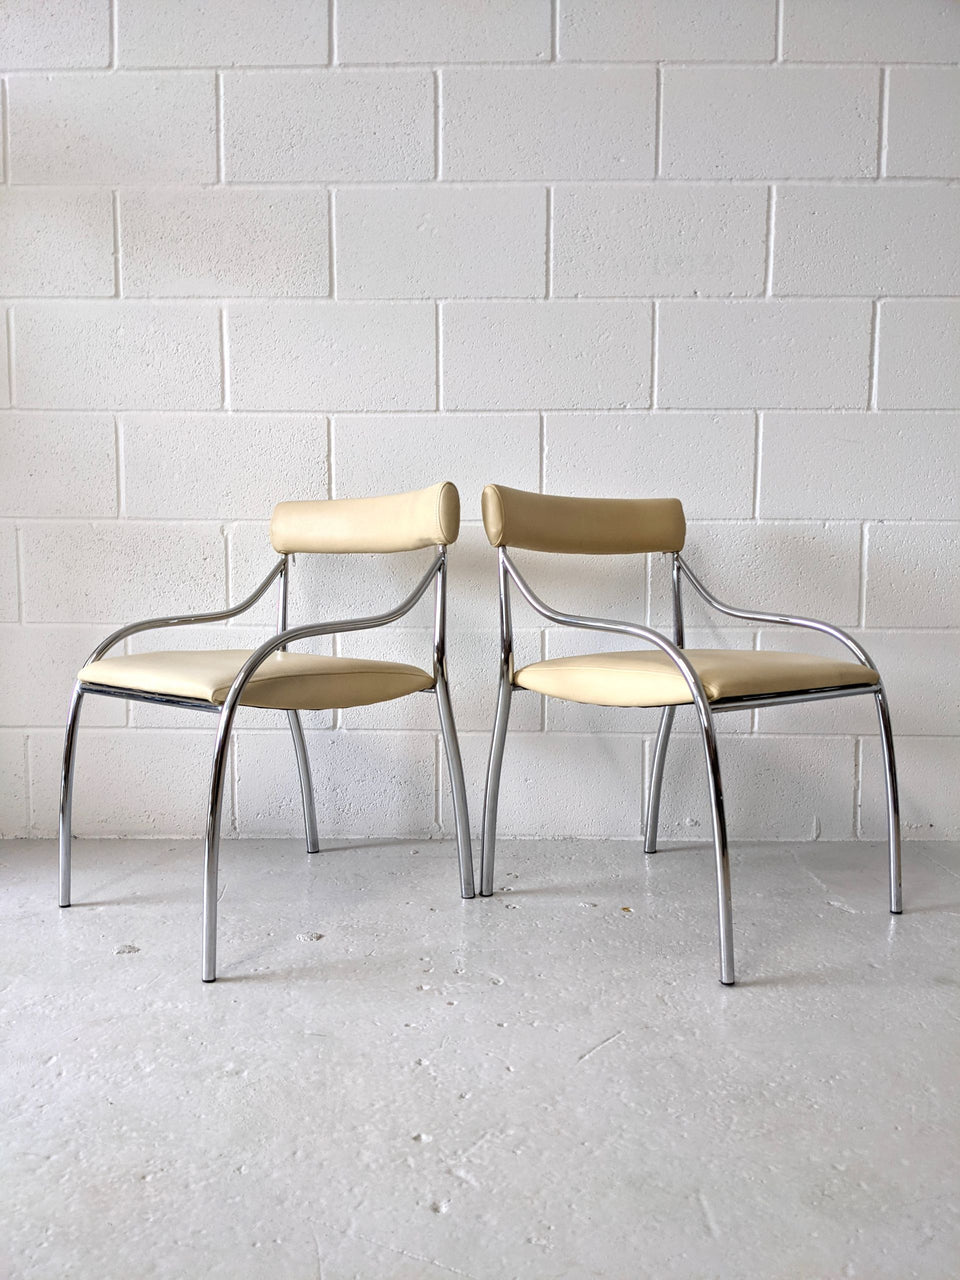 1980s Cream and Chrome Curved Chairs